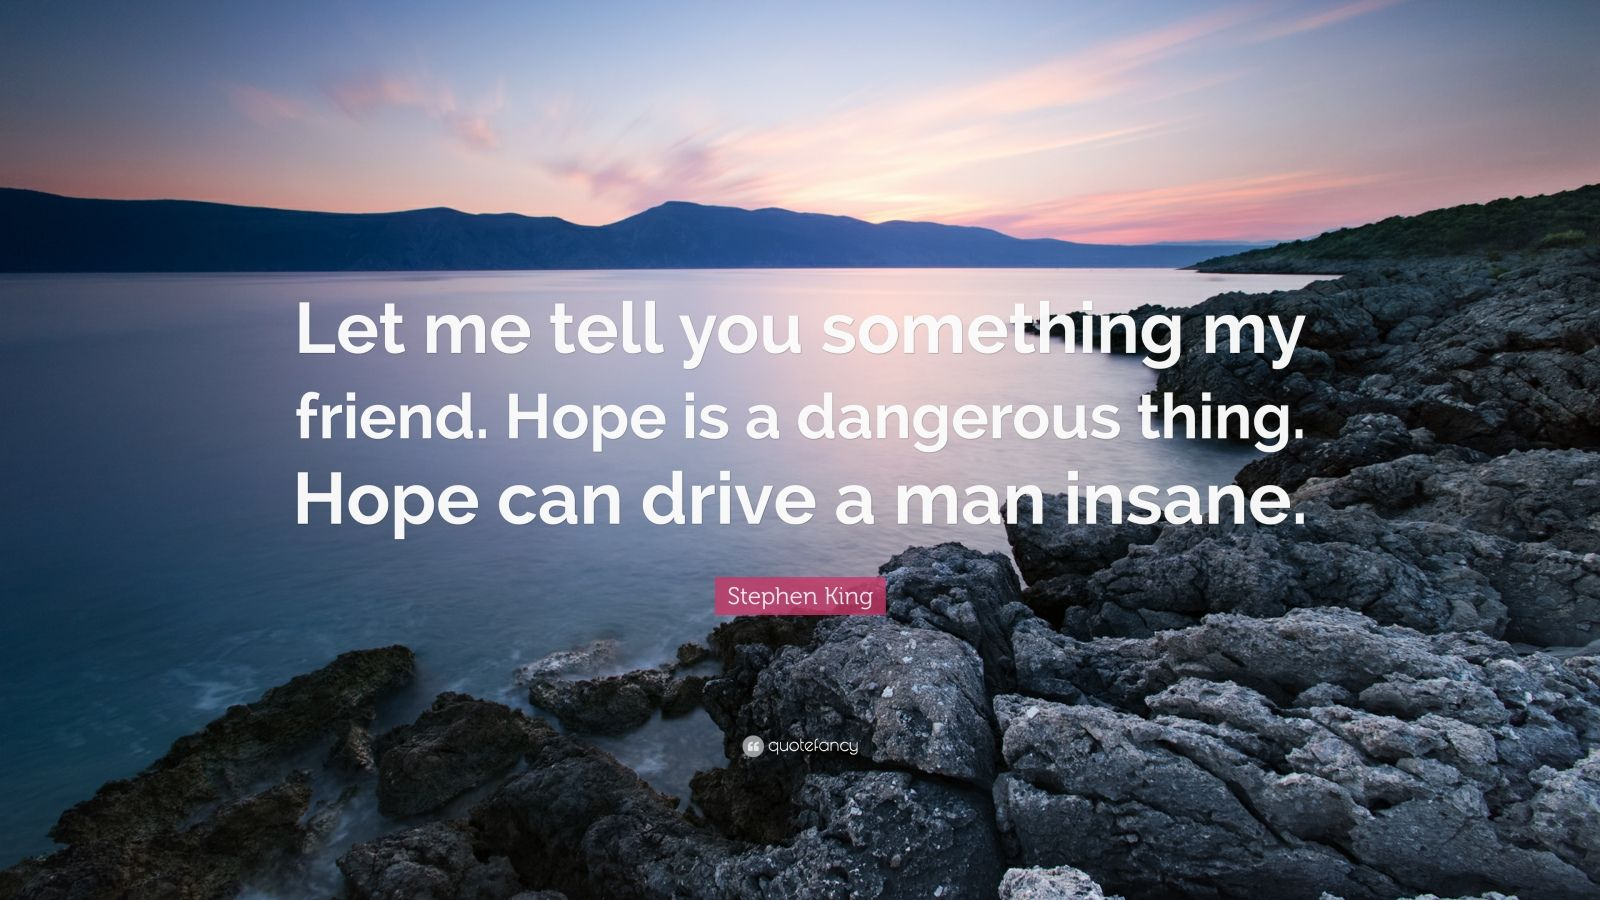 """Stephen King Quote: """"Let me tell you something my friend. Hope is a dangerous thing. Hope can drive a man insane."""""""